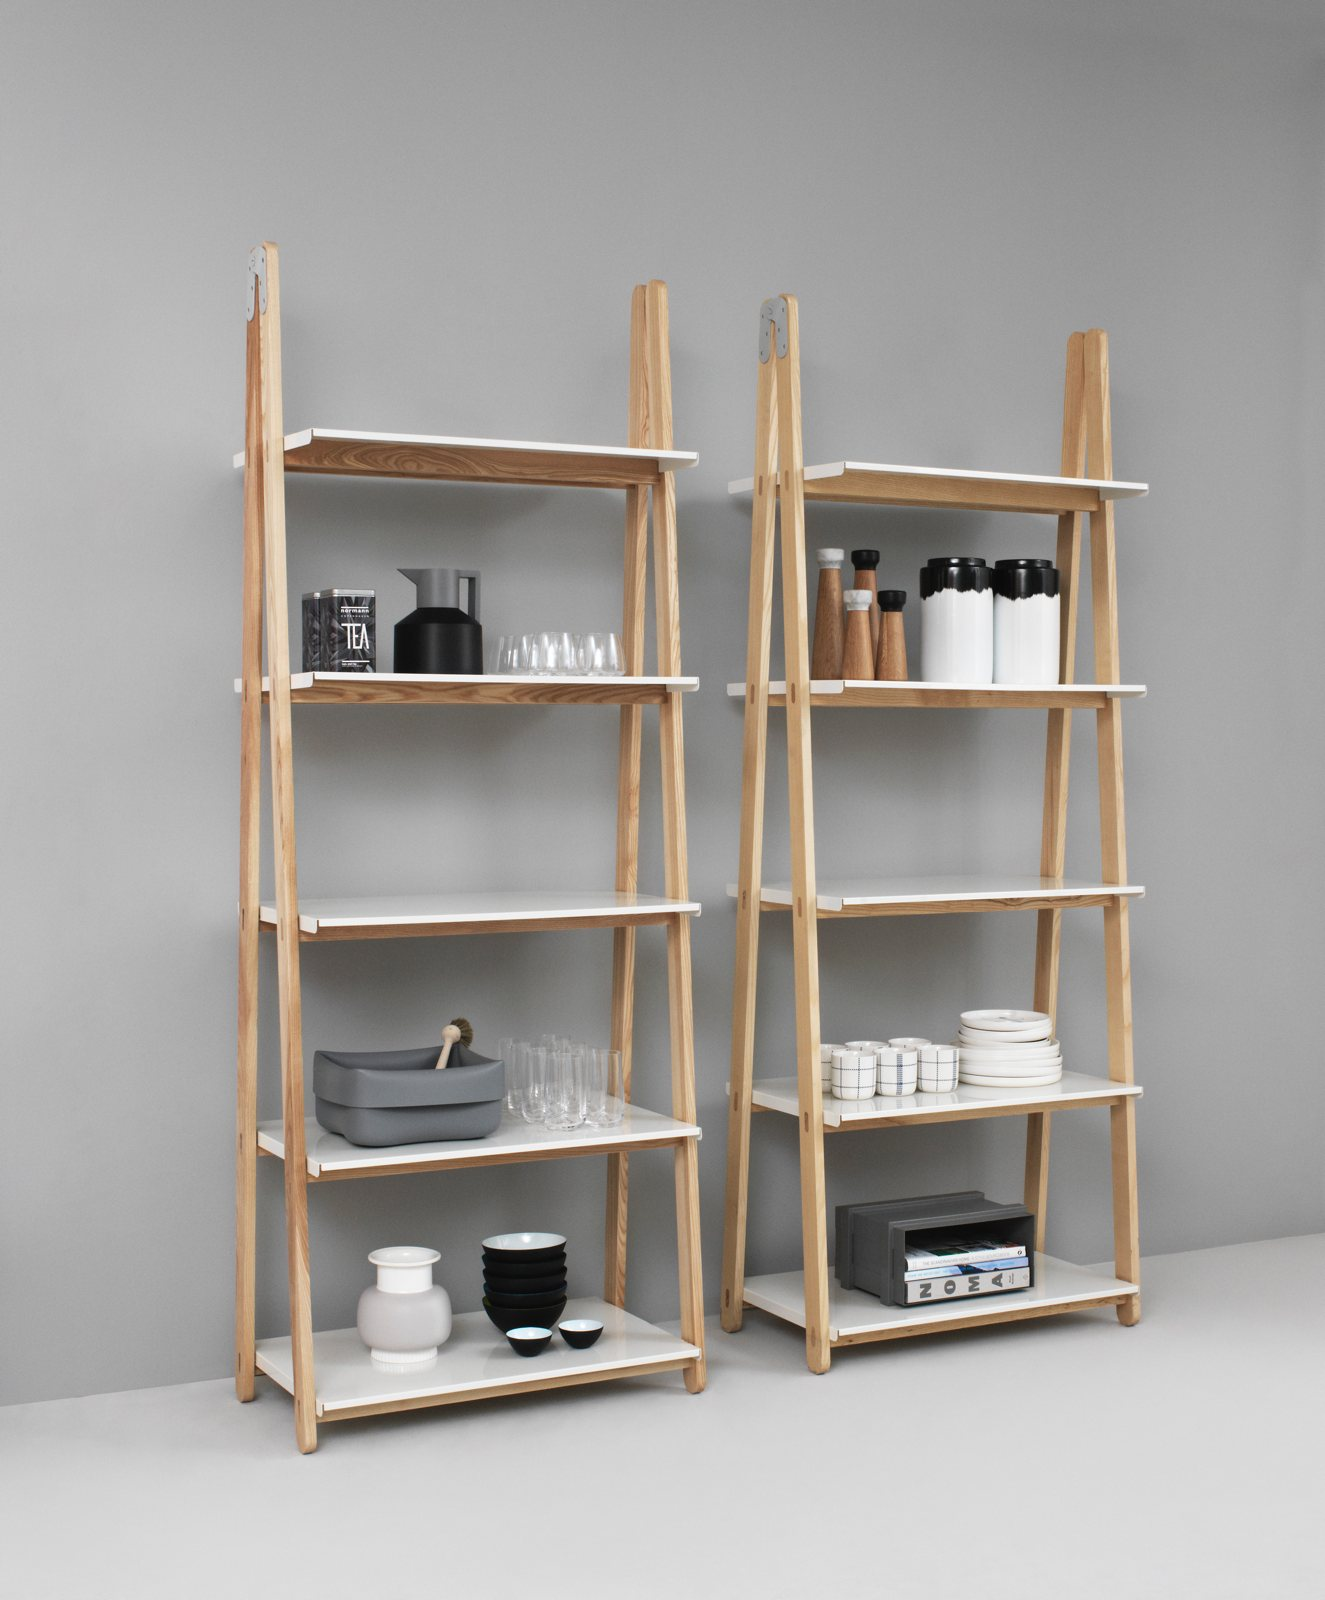 One Step Up Bookcase High By Unit 10 Design For Normann